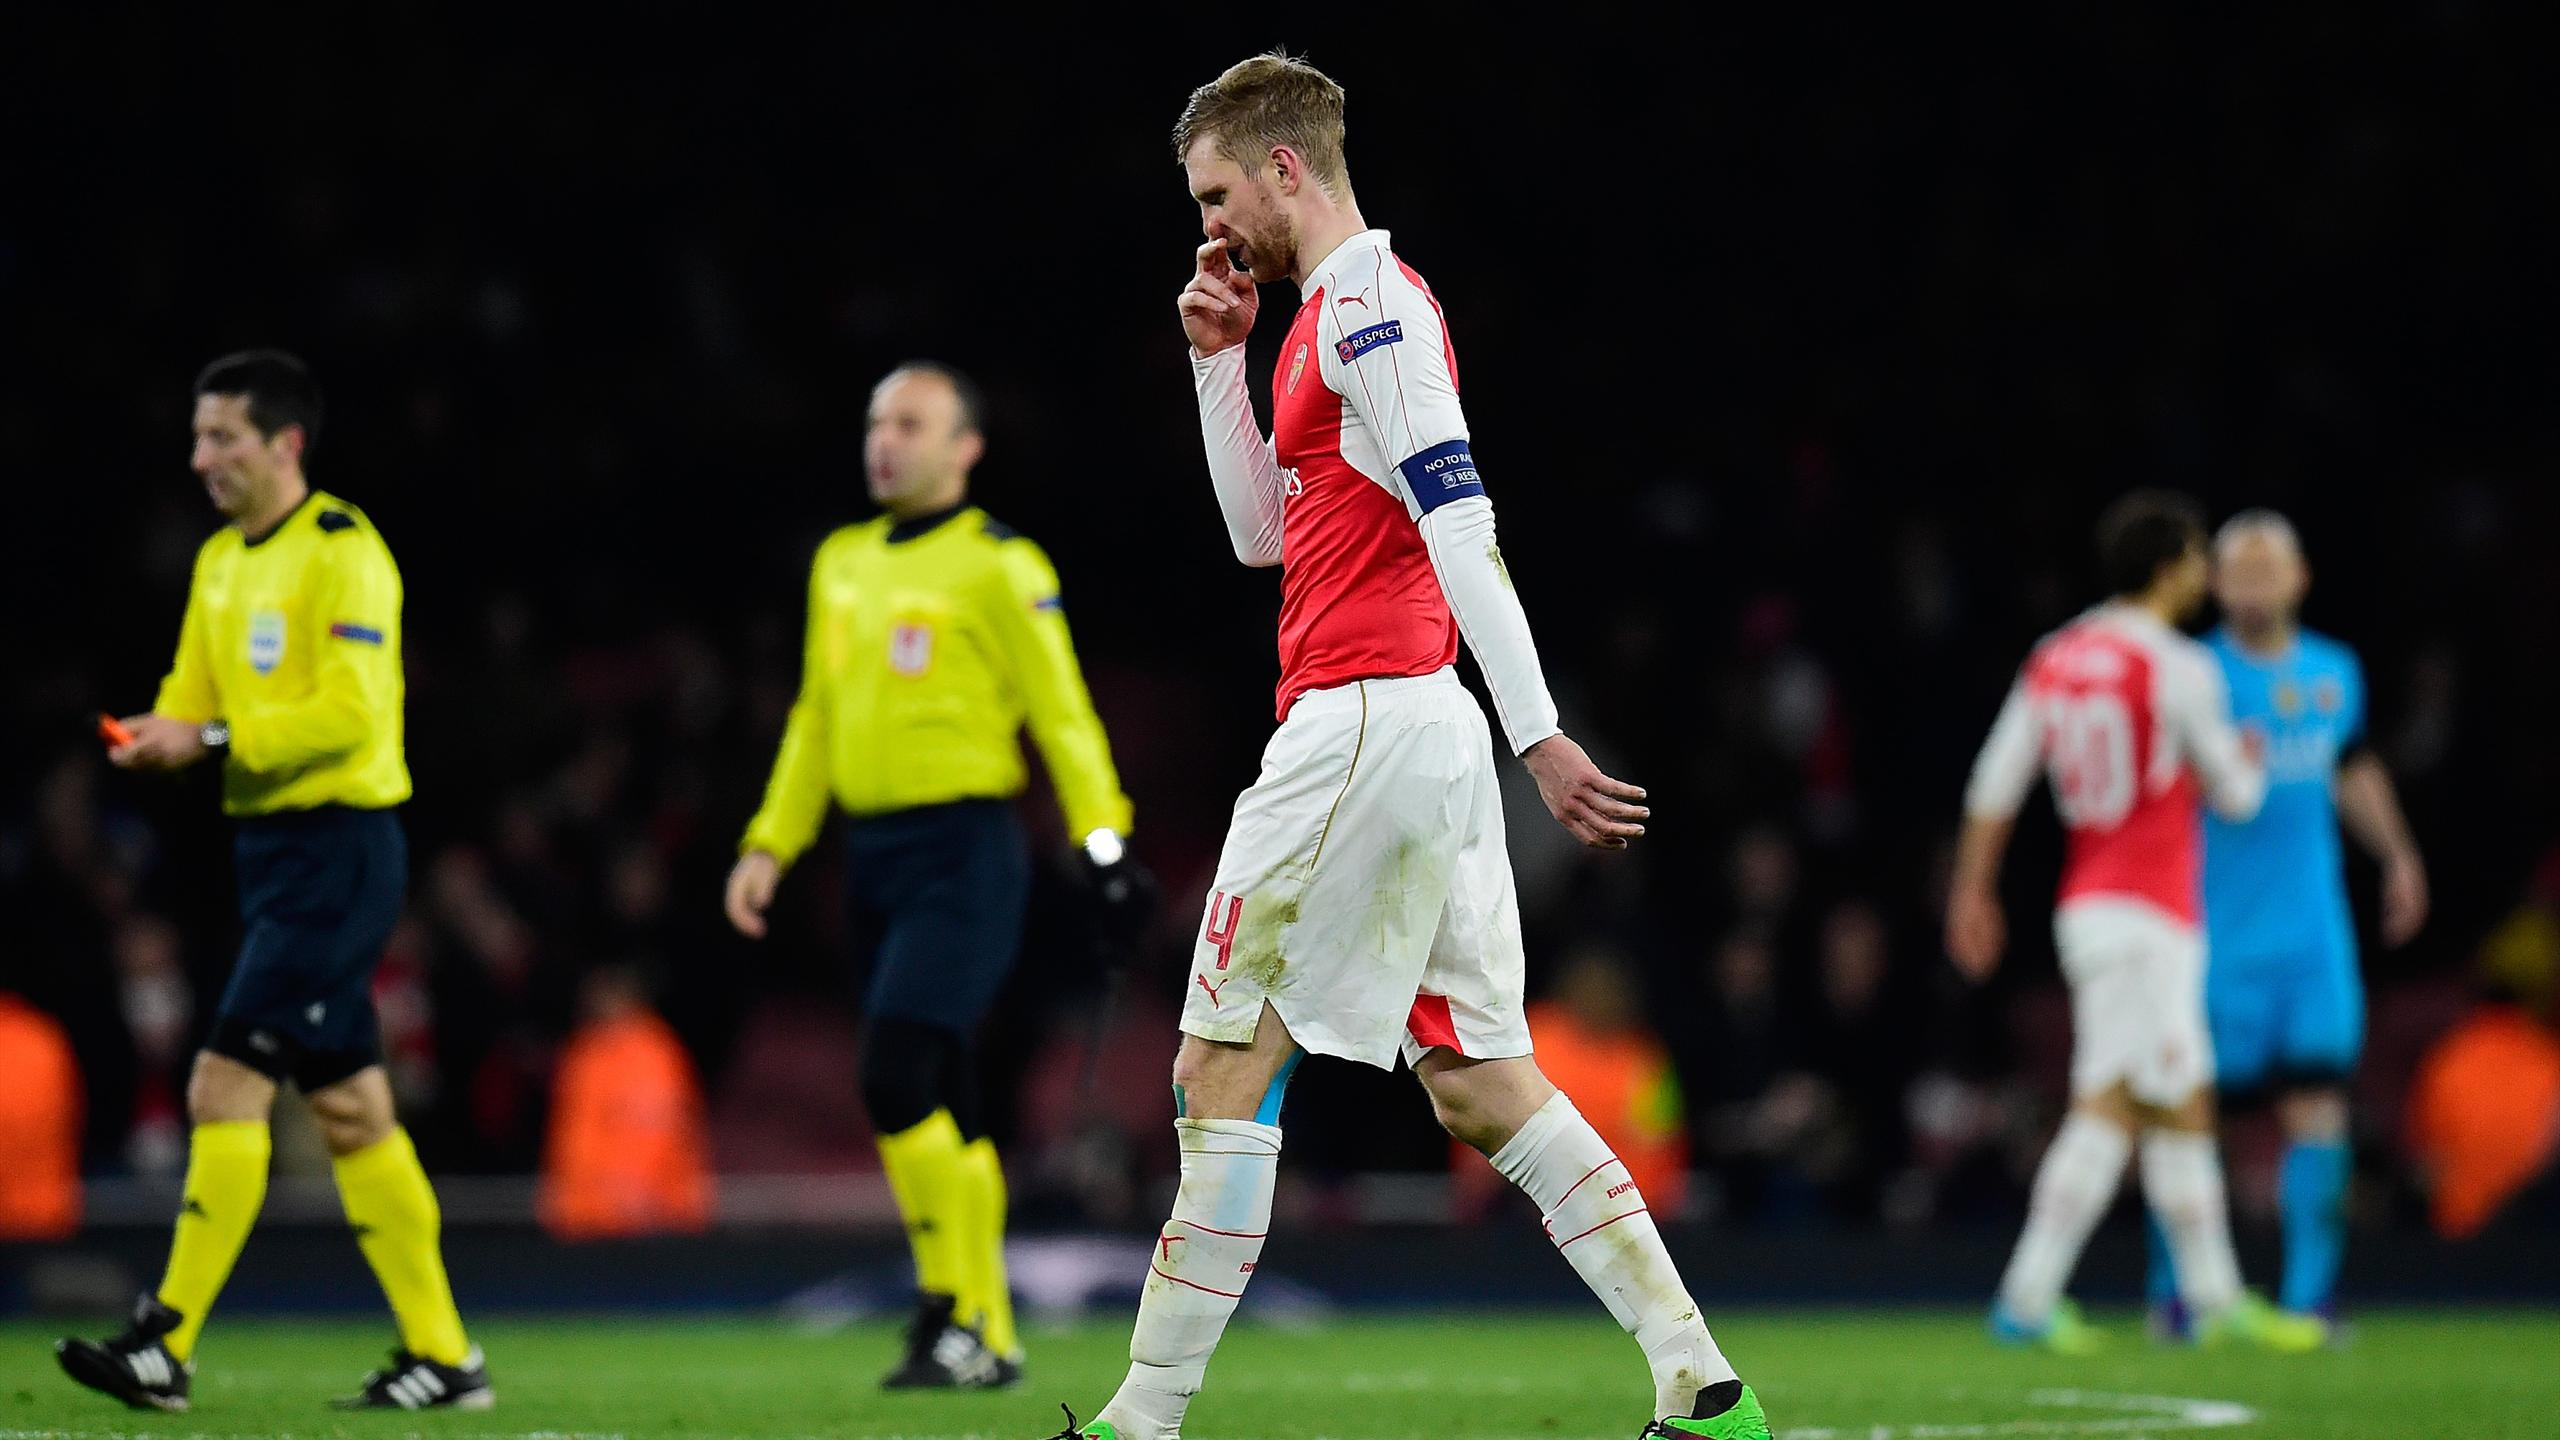 Arsenal's German defender Per Mertesacker leaves the pitch follwing the UEFA Champions League round of 16 1st leg football match between Arsenal and Barcelona